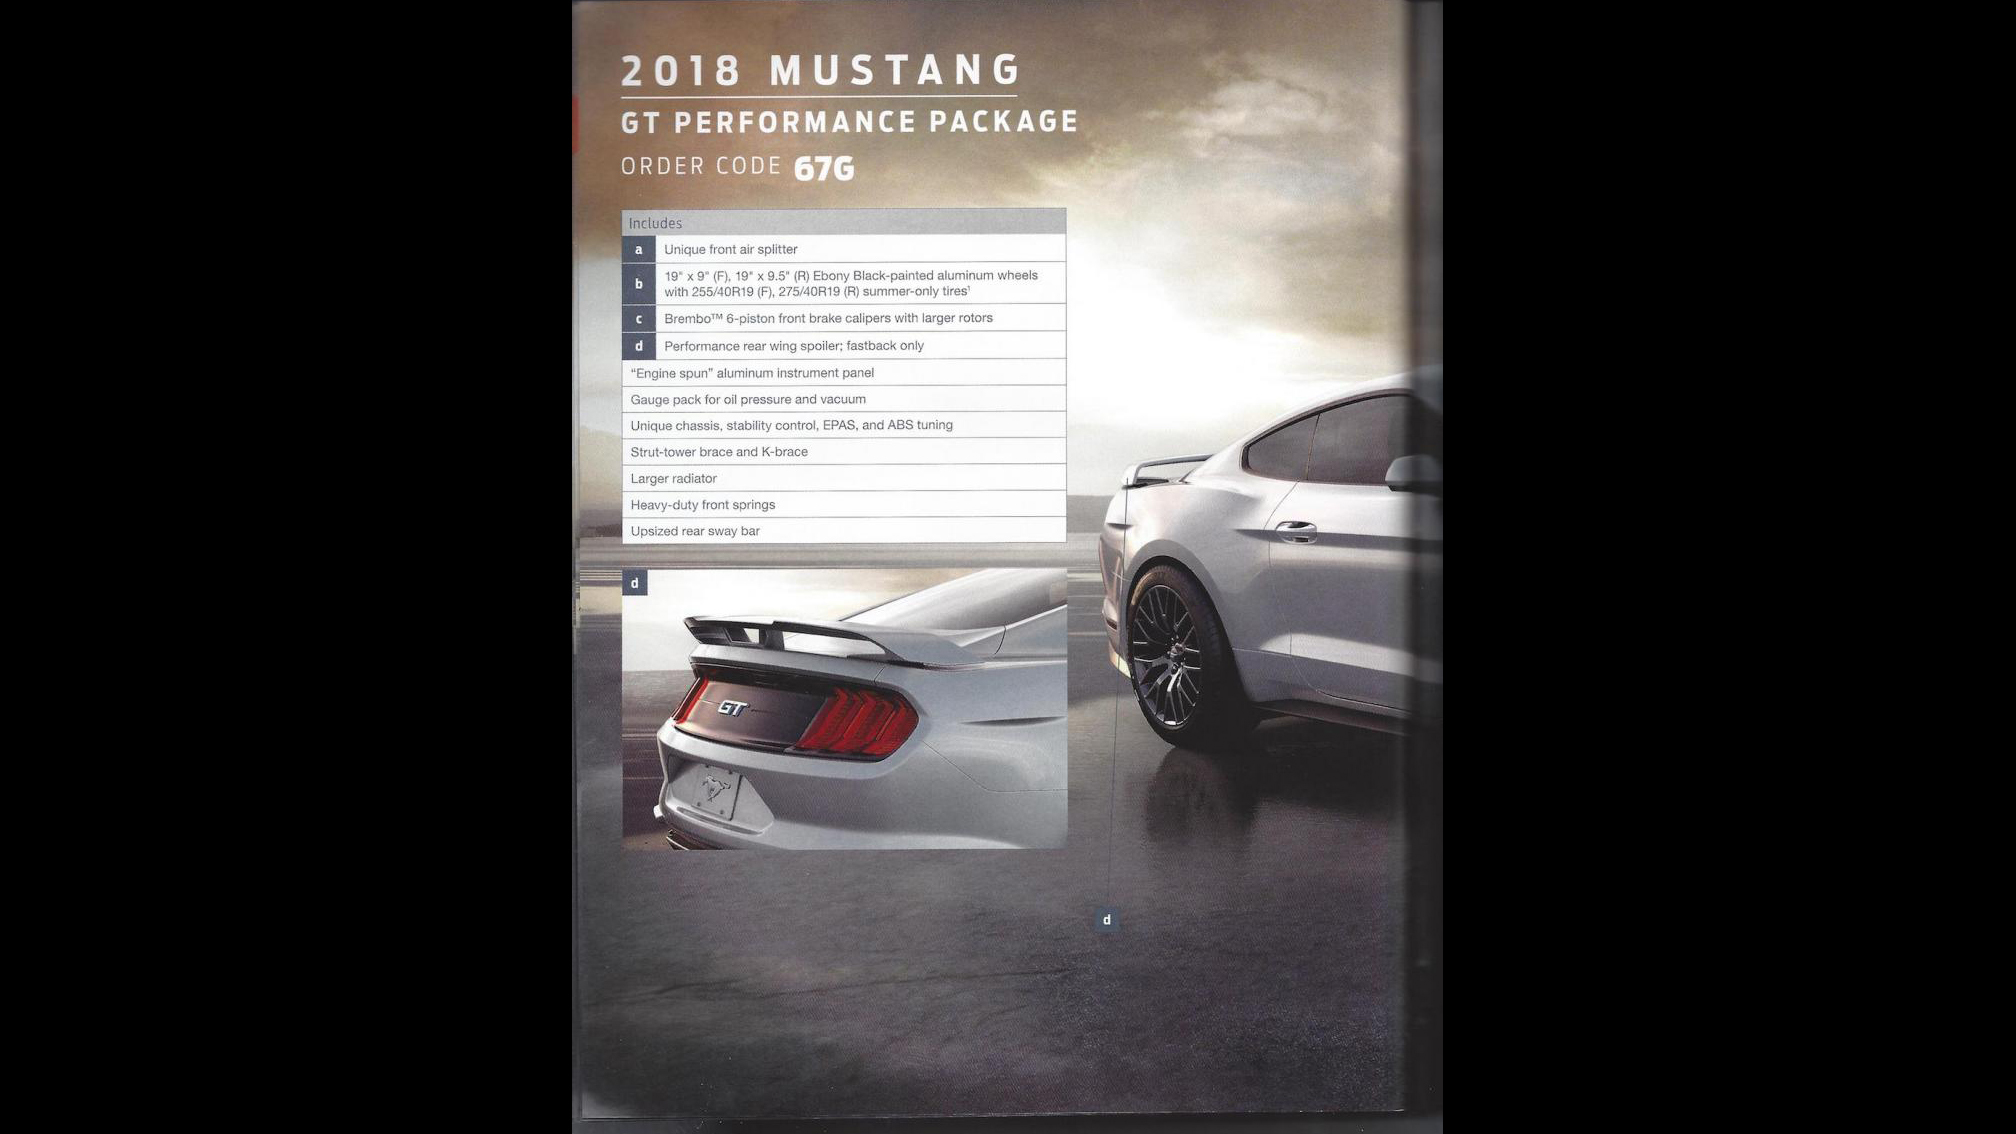 Ford Mustang 2018 Order Guide (4)